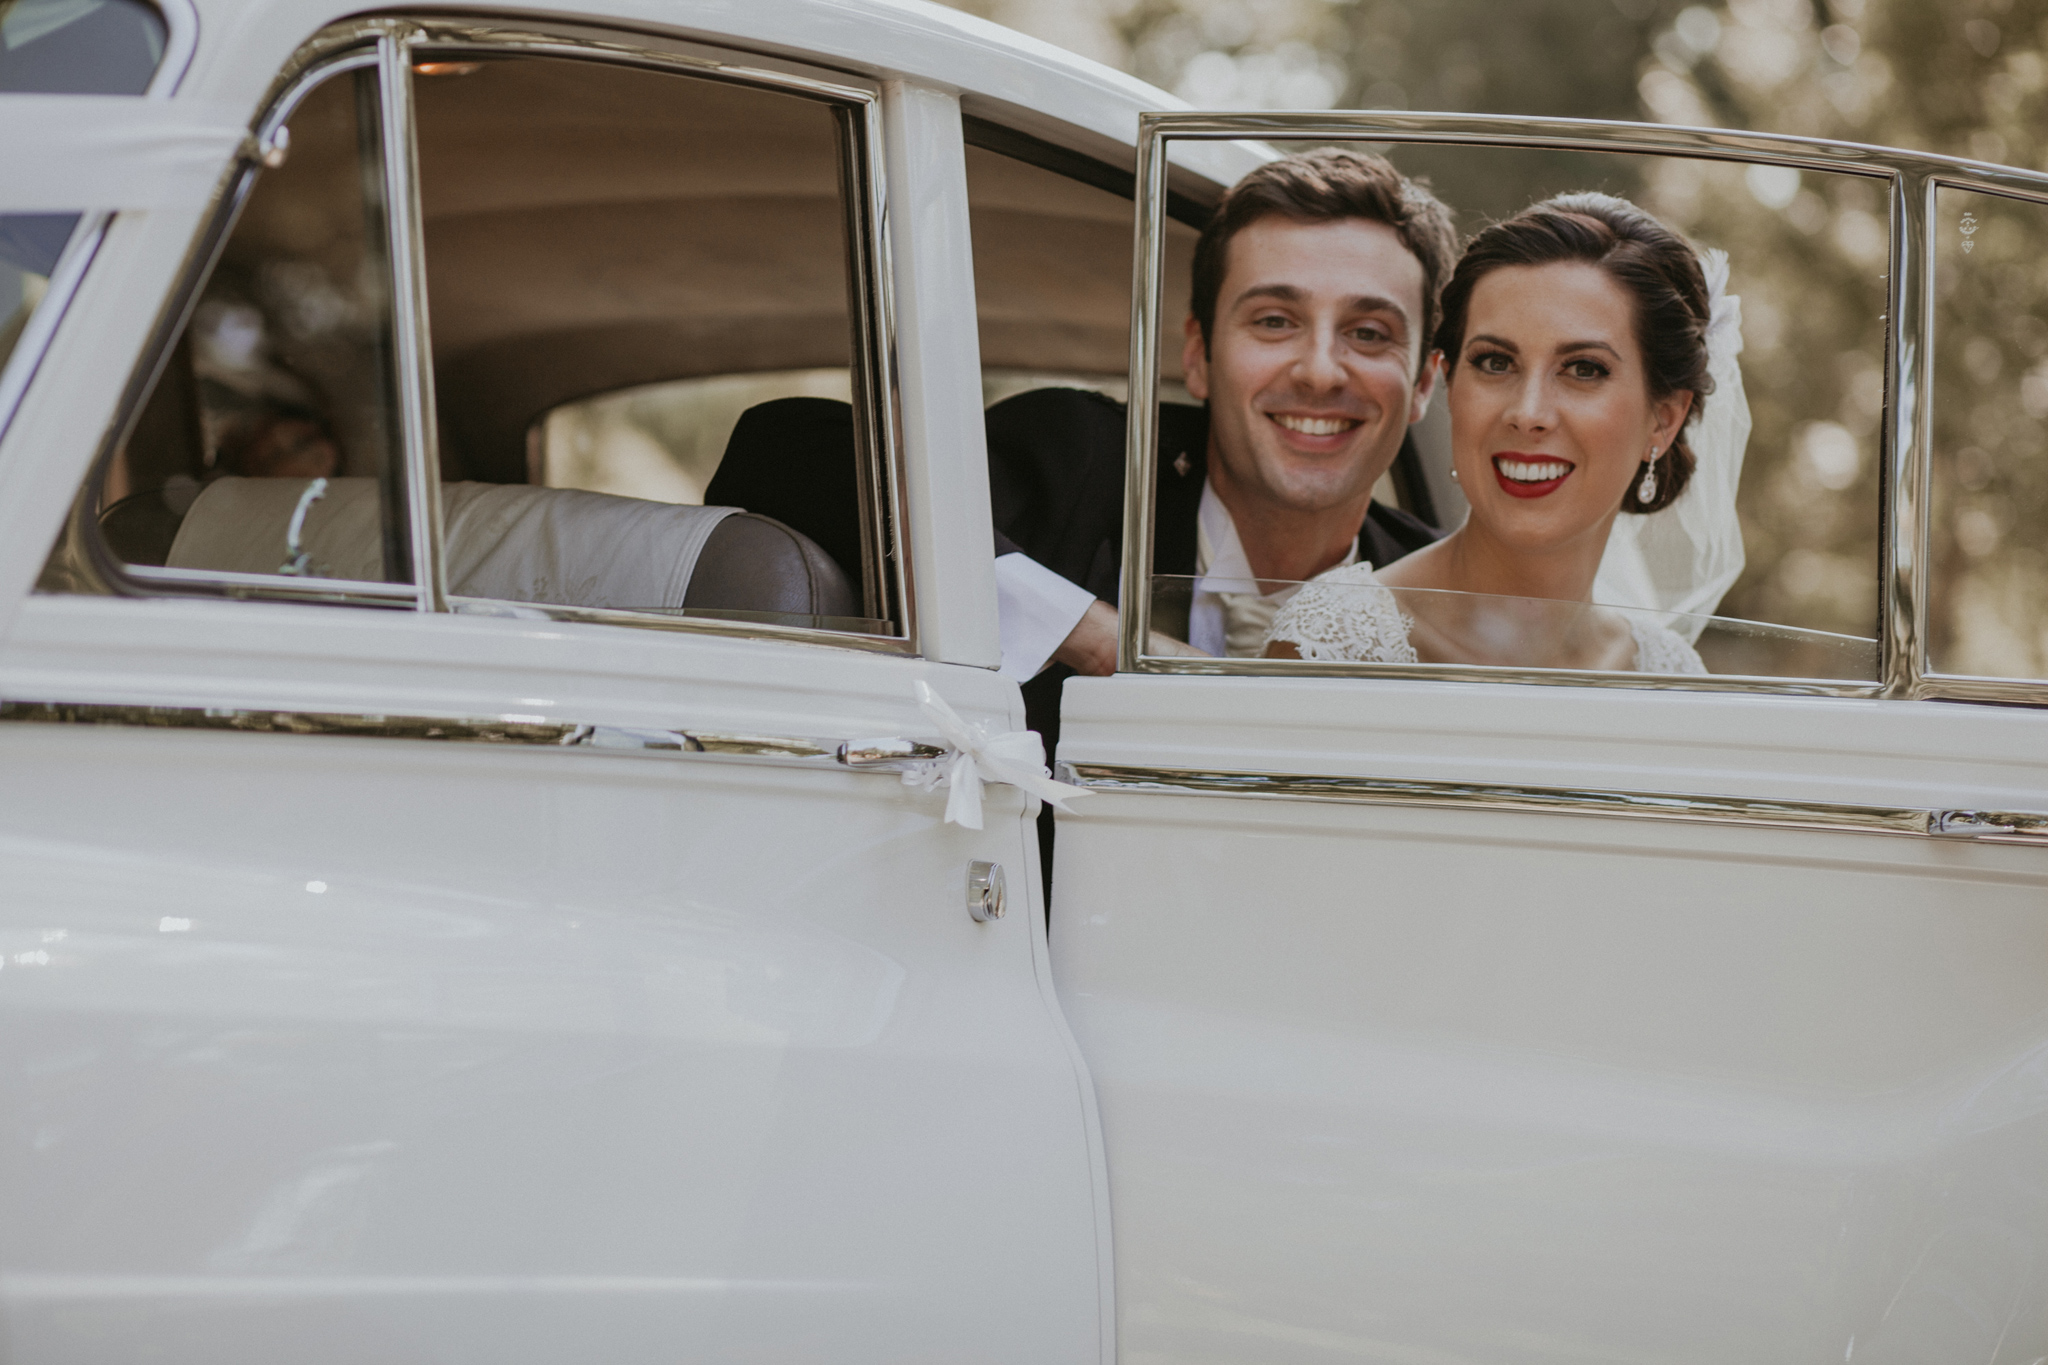 Portrait of bride and groom smiling in Rolls Royce car